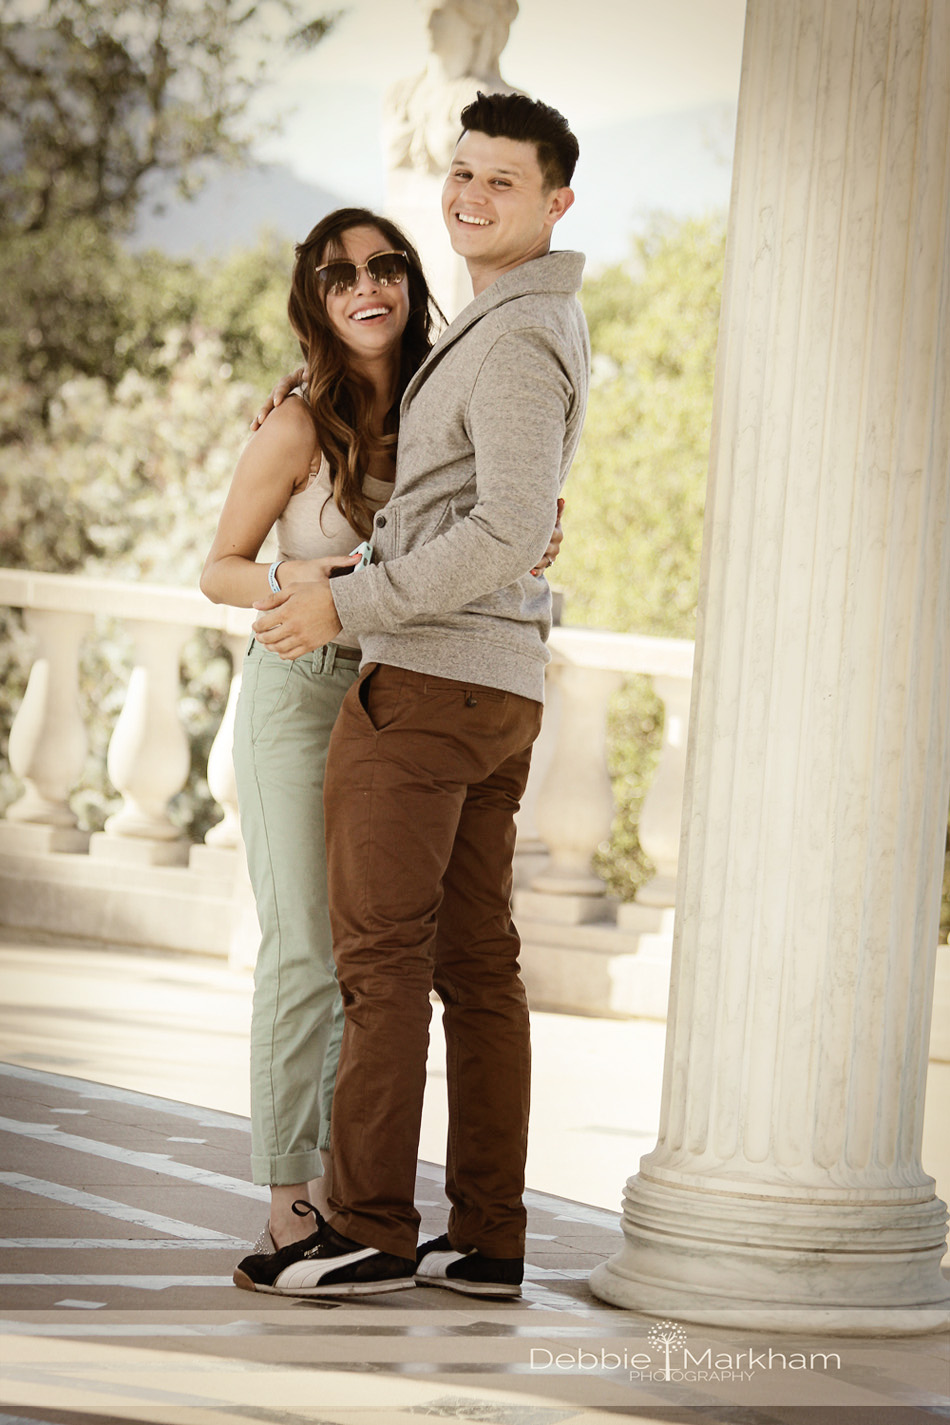 Debbie Markham Cambria Photographer-Victor proposes to Alma at Hearst Castle-Engagement SessionIMG_8941